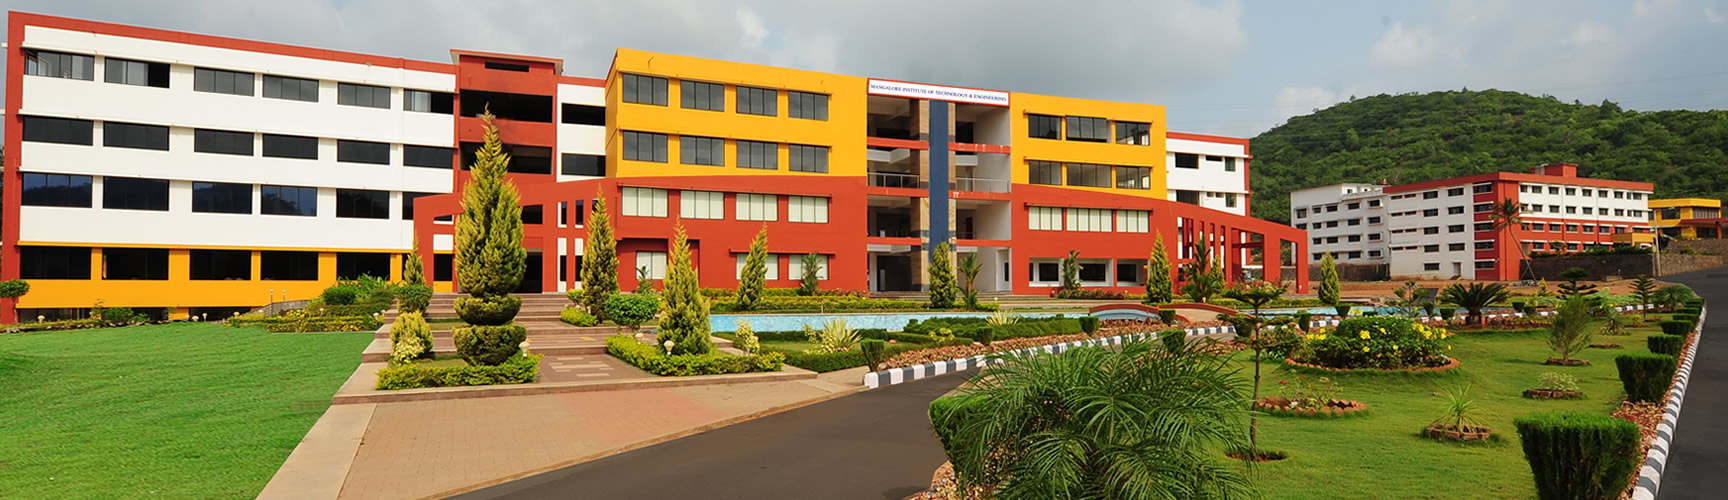 Mangalore Institute of Technology and Engineering (MITE)